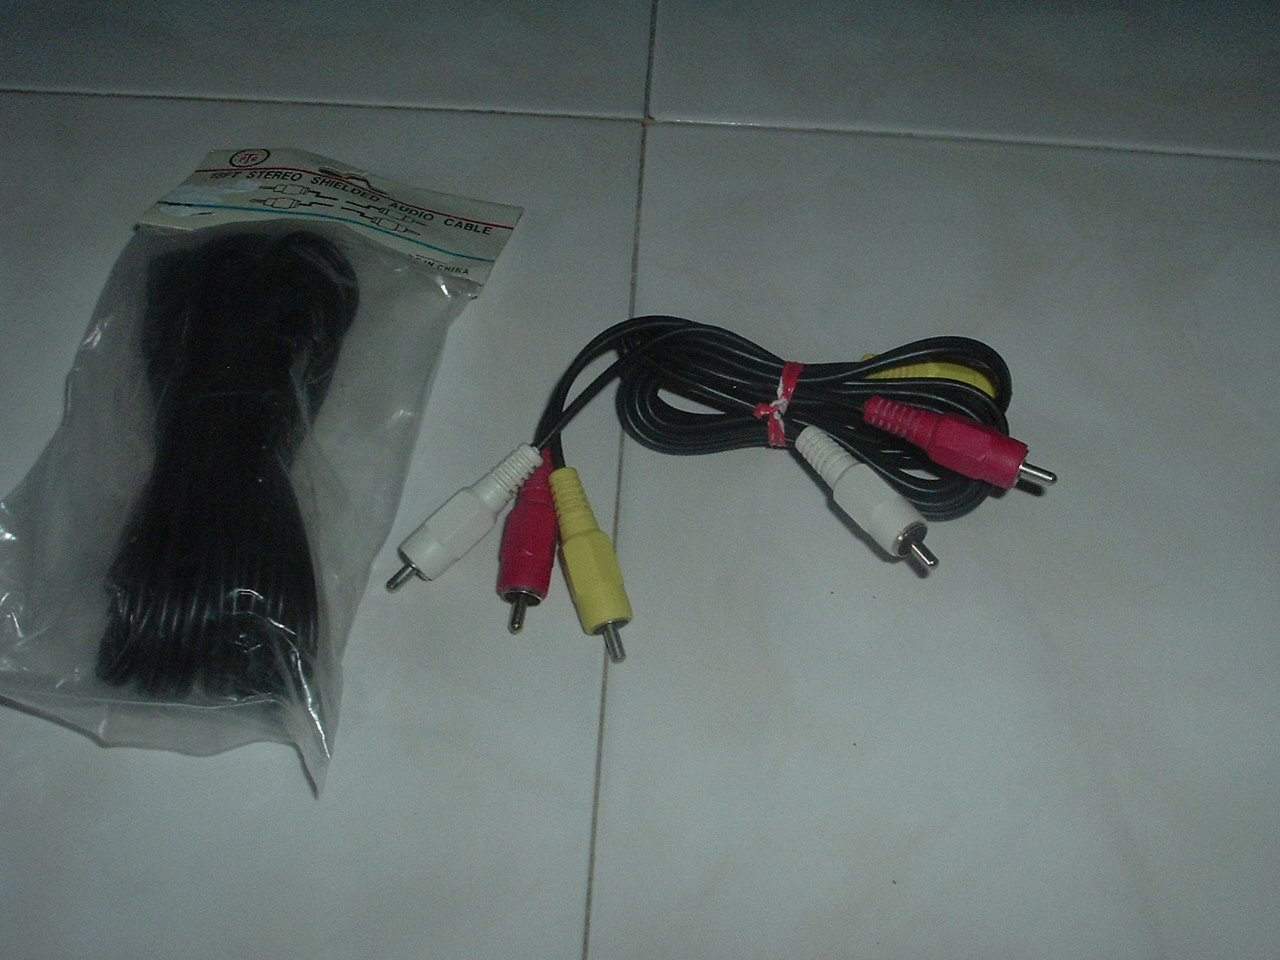 Standard Red,  & Black RCA Patch Cords - 15 Feet